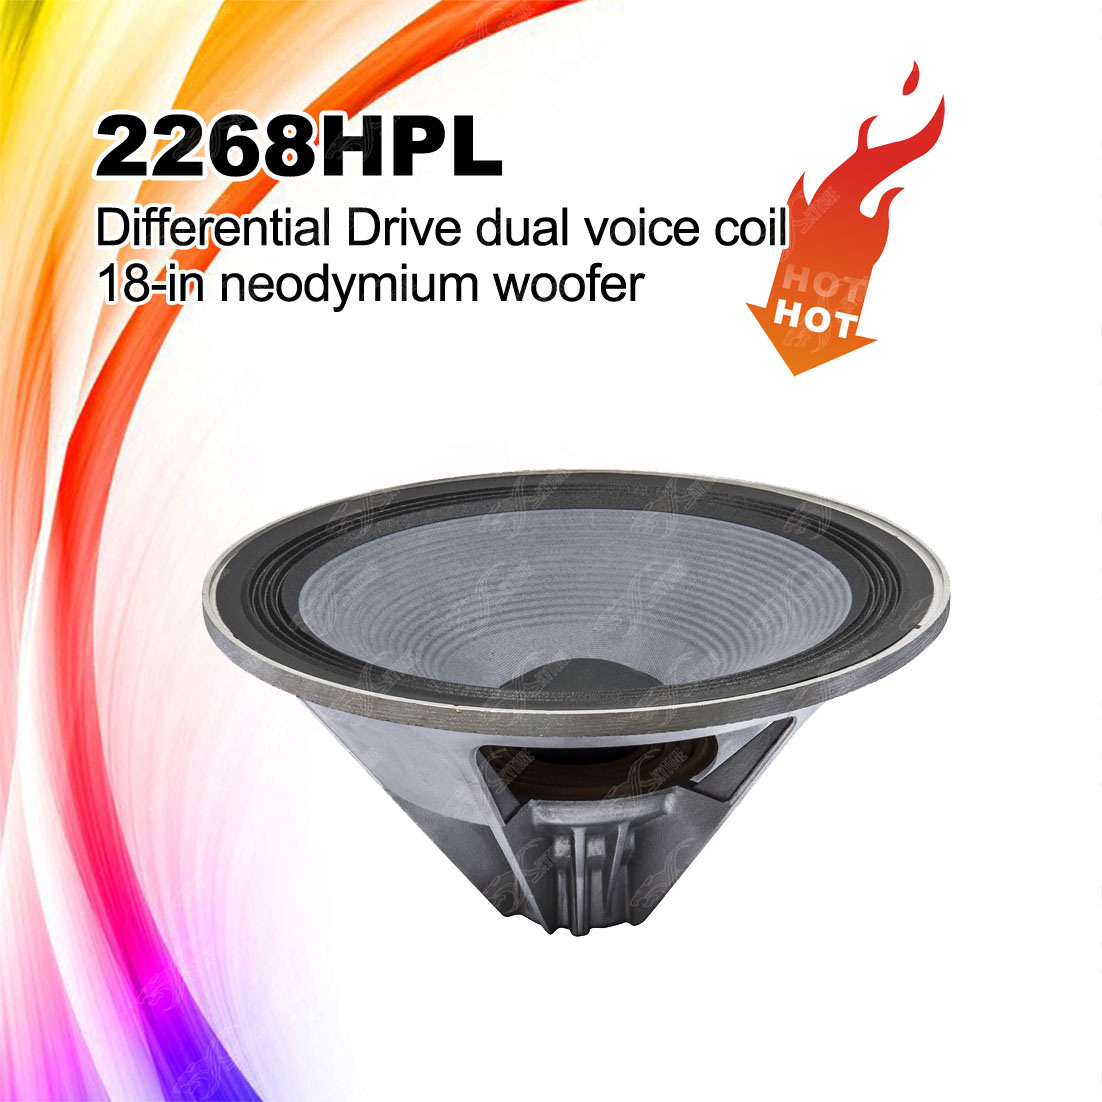 Beautiful Wiring Dual Voice Coil Speakers Component - Best Images ...